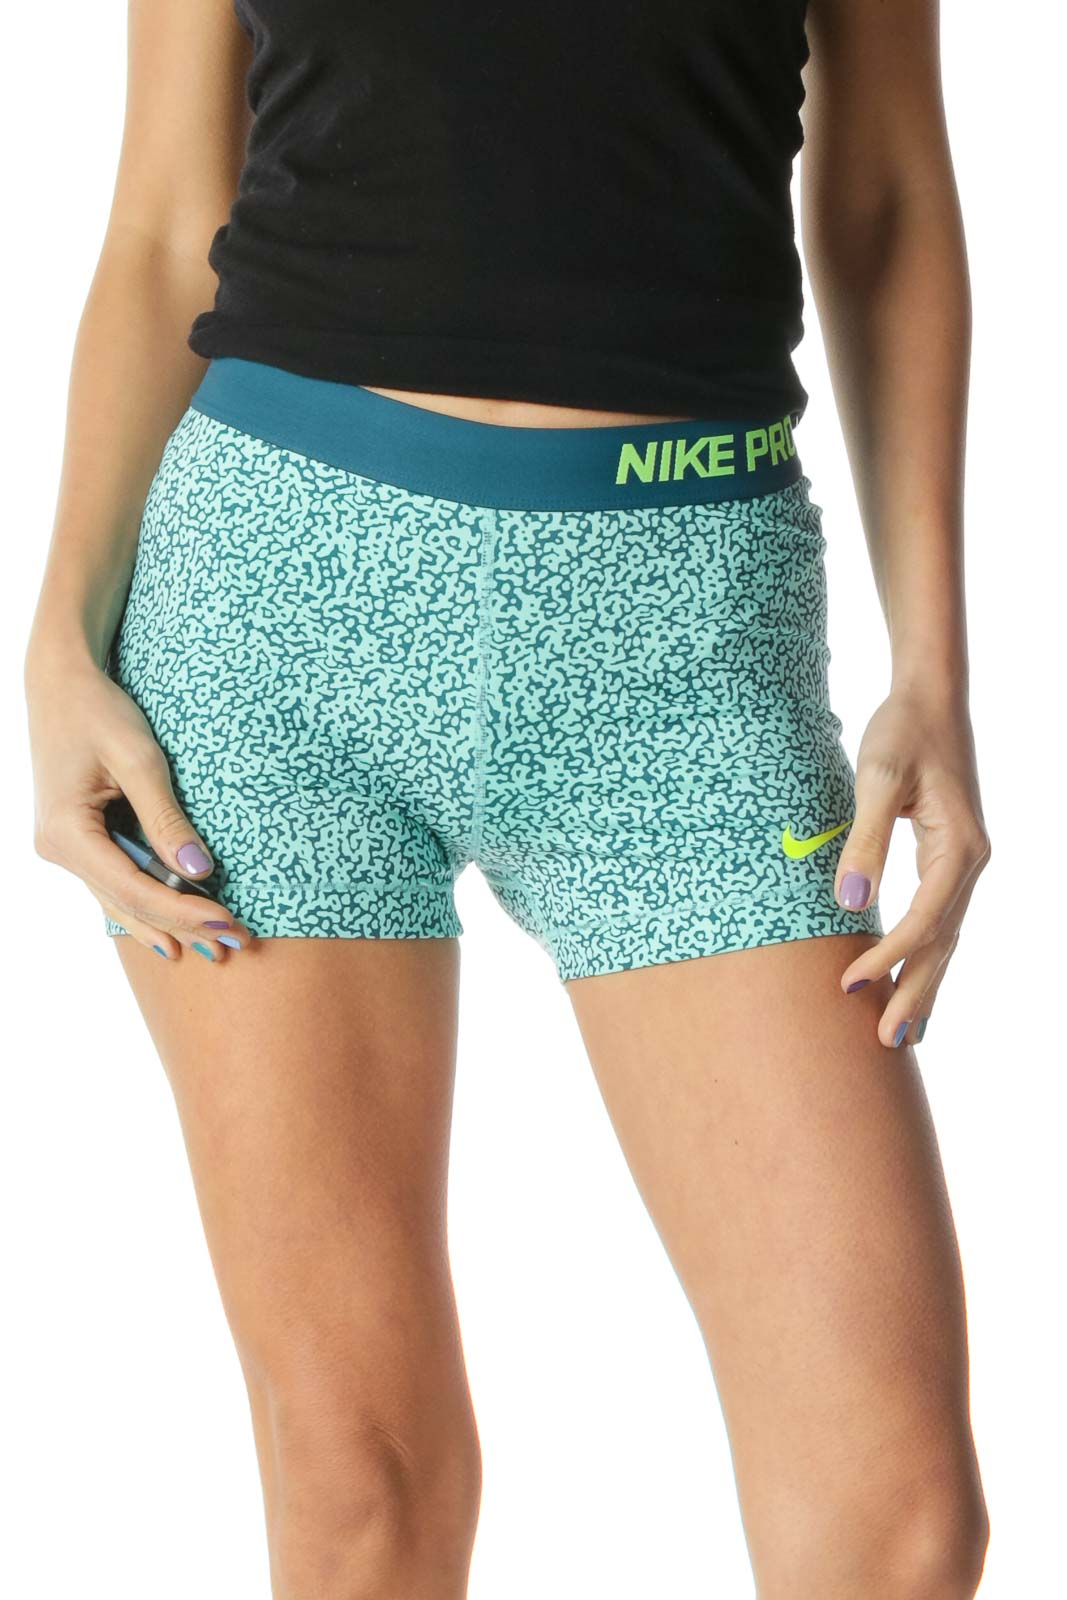 Green Navy Tight Sports Shorts